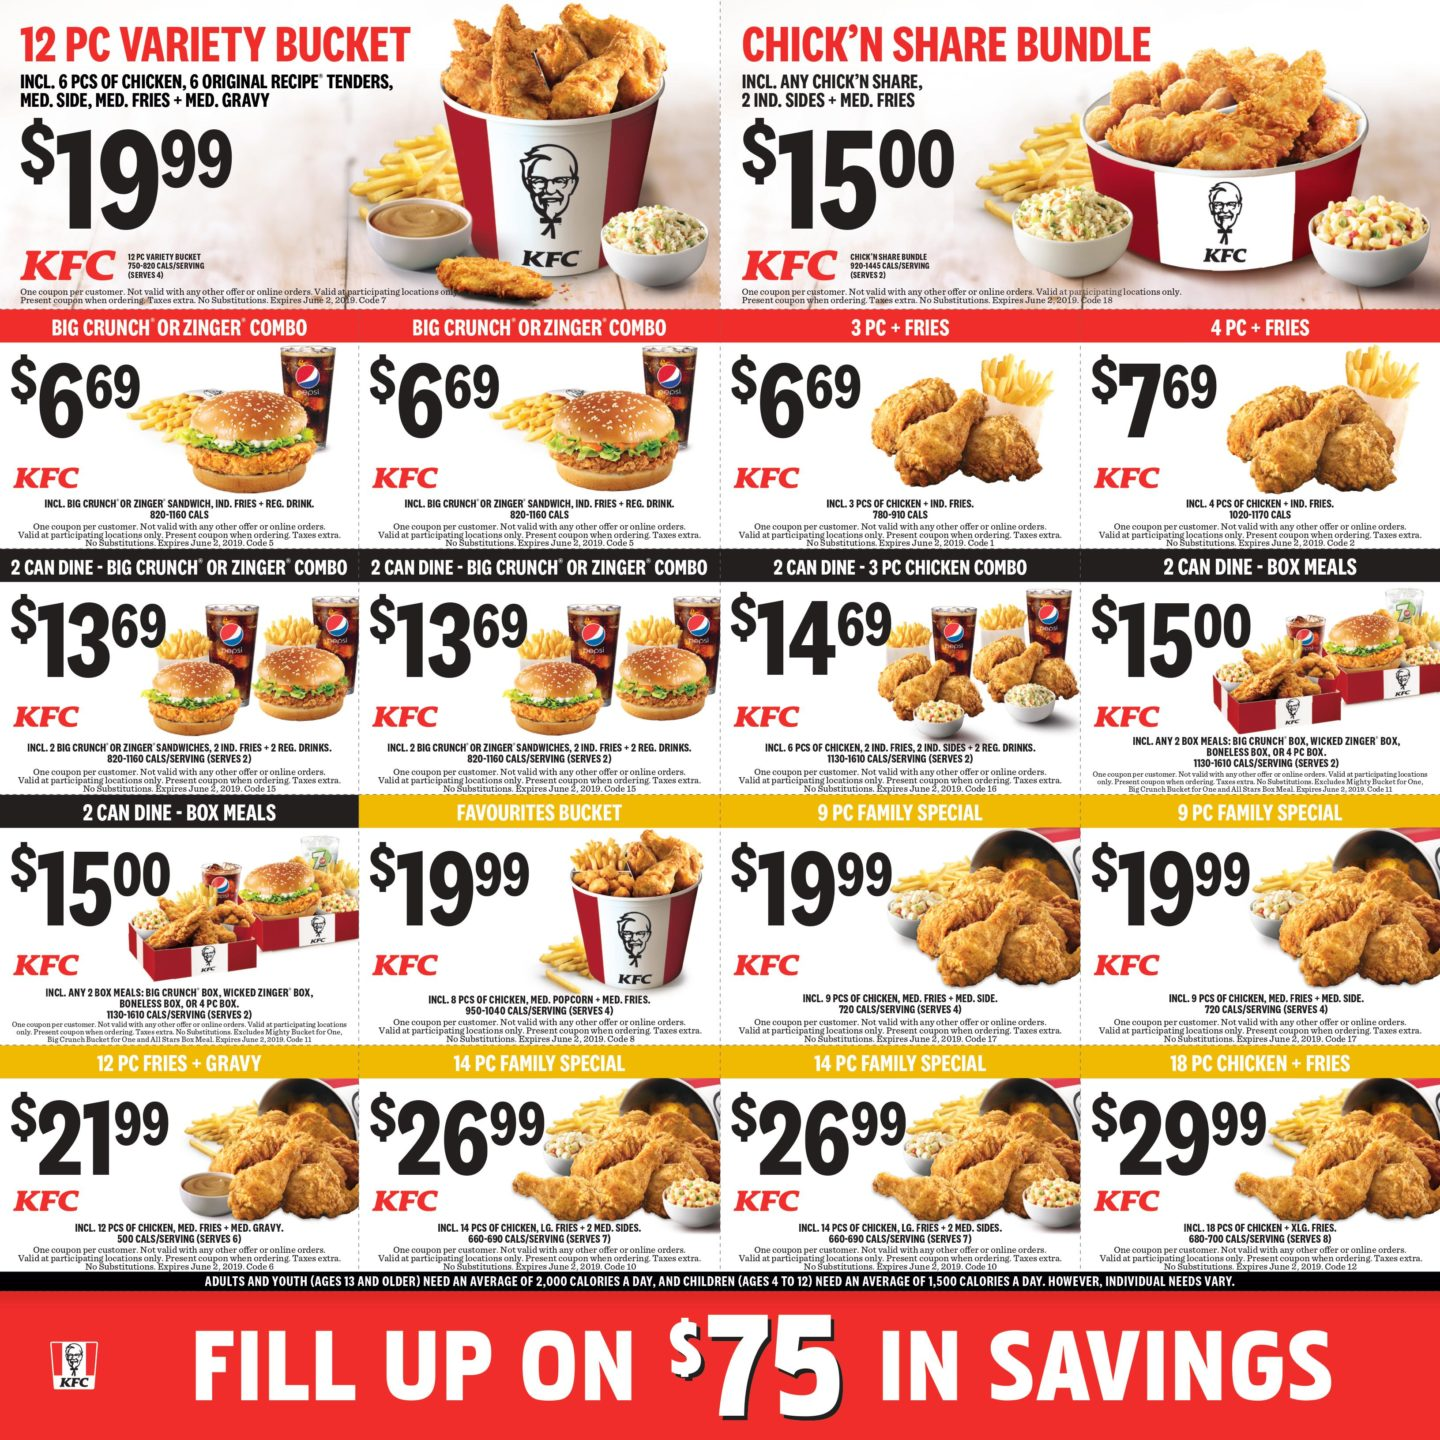 image regarding Taco Bell Printable Coupons named Cafe Discount codes and Offers - KFC Coupon codes, AW, McDonalds